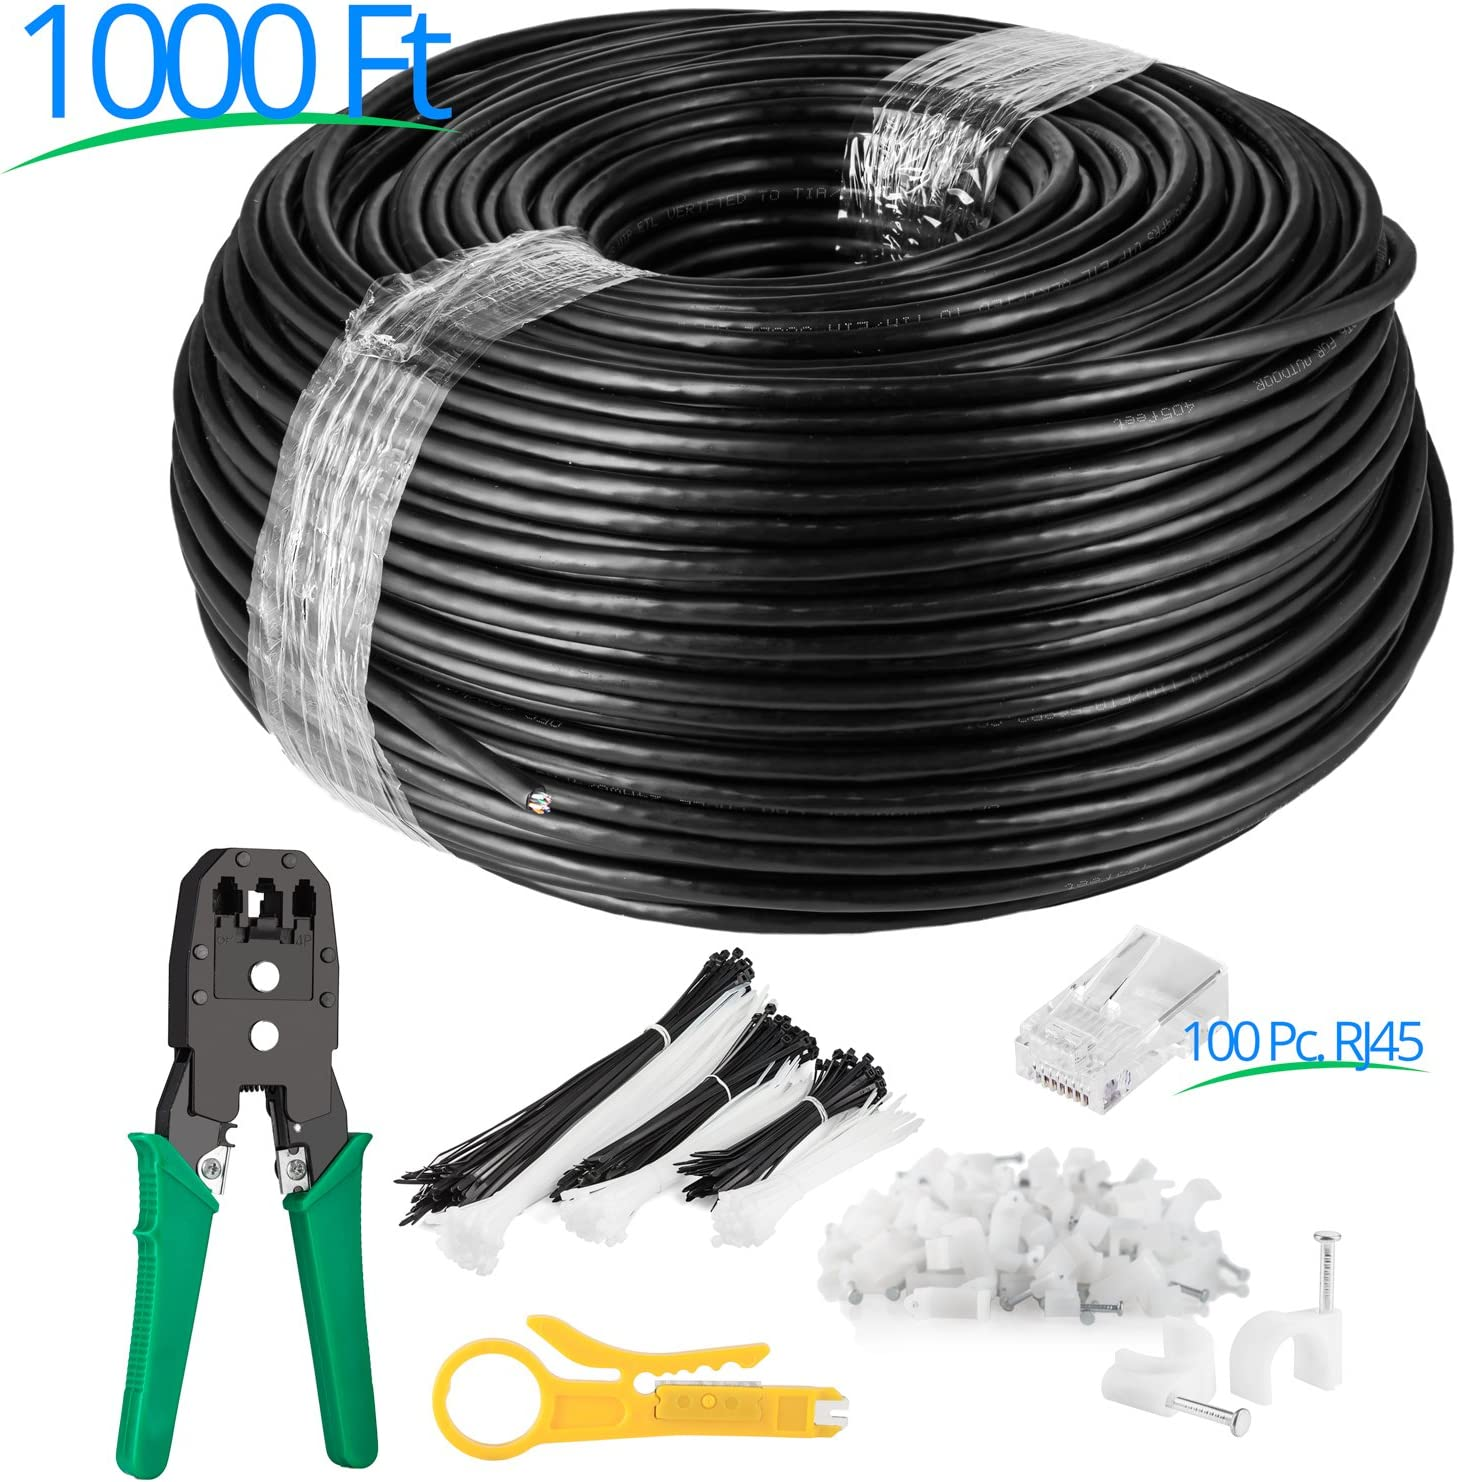 100ft /– Black Zero Lag Pure Copper 550Mhz Waterproof Ethernet Cable Suitable for Direct Burial Installations. Maximm Cat6 Outdoor Cable